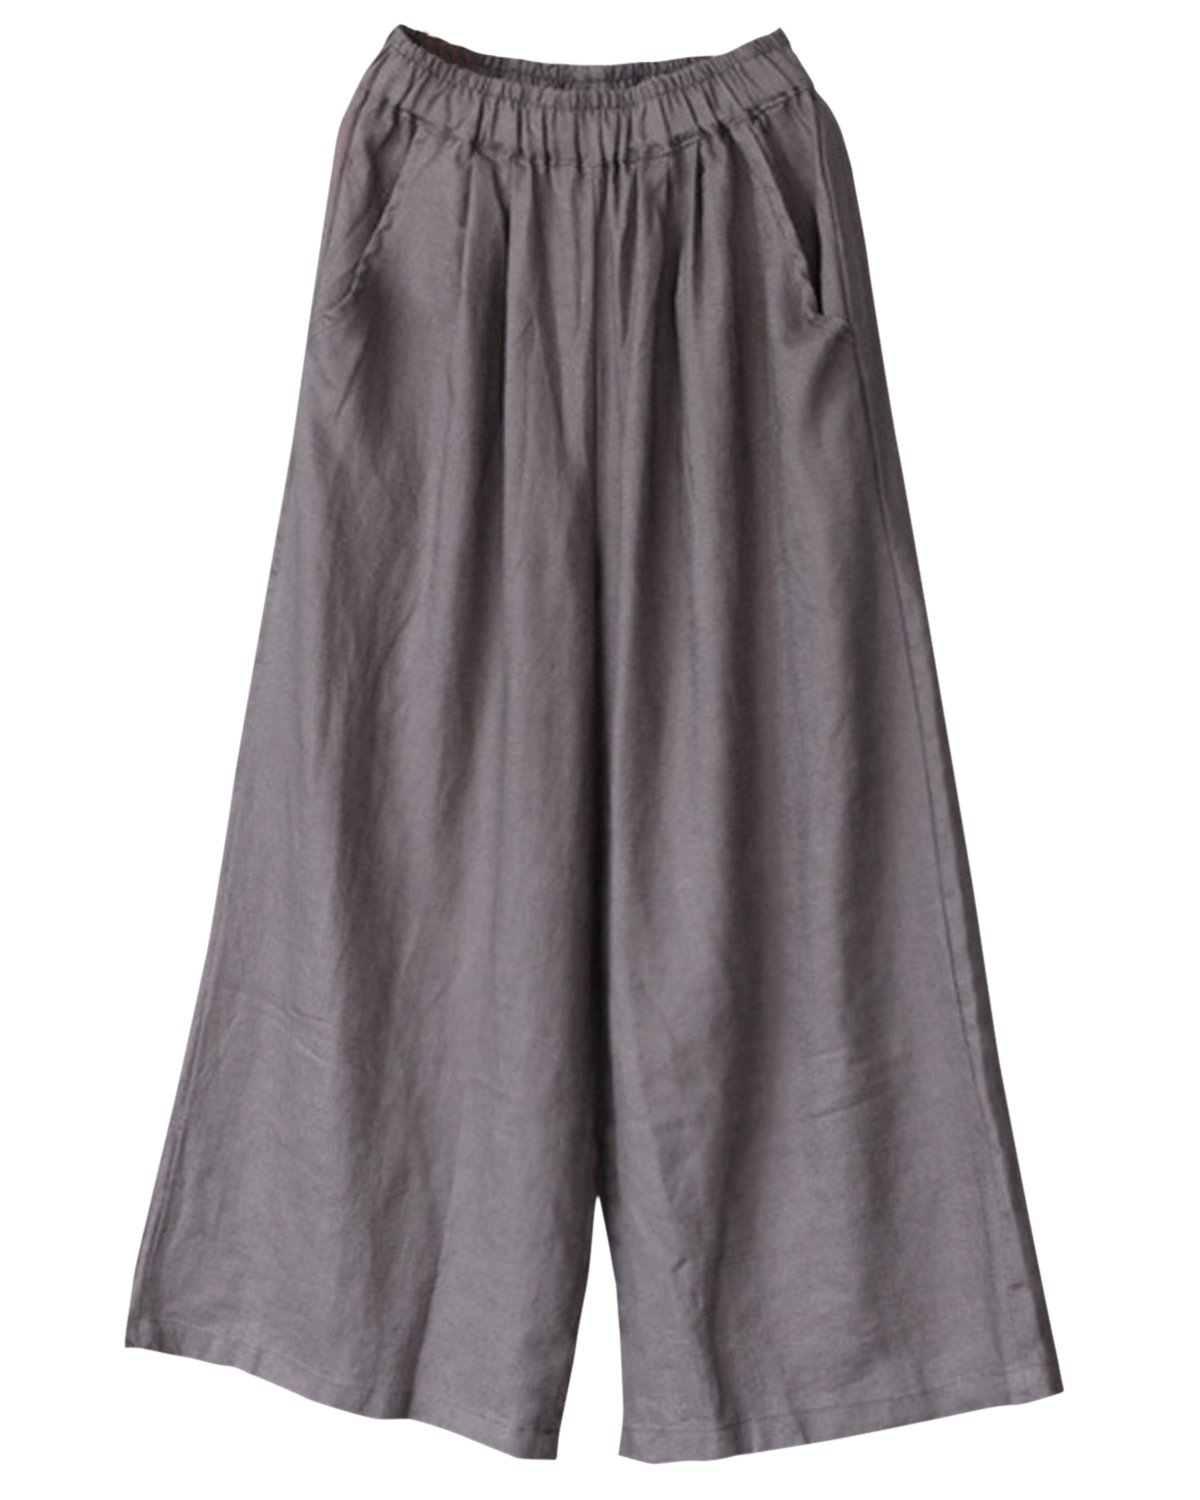 Aeneontrue Women's Casual Linen Wide Leg Pants Elastic Waist Pull On Trousers with Pockets Gray